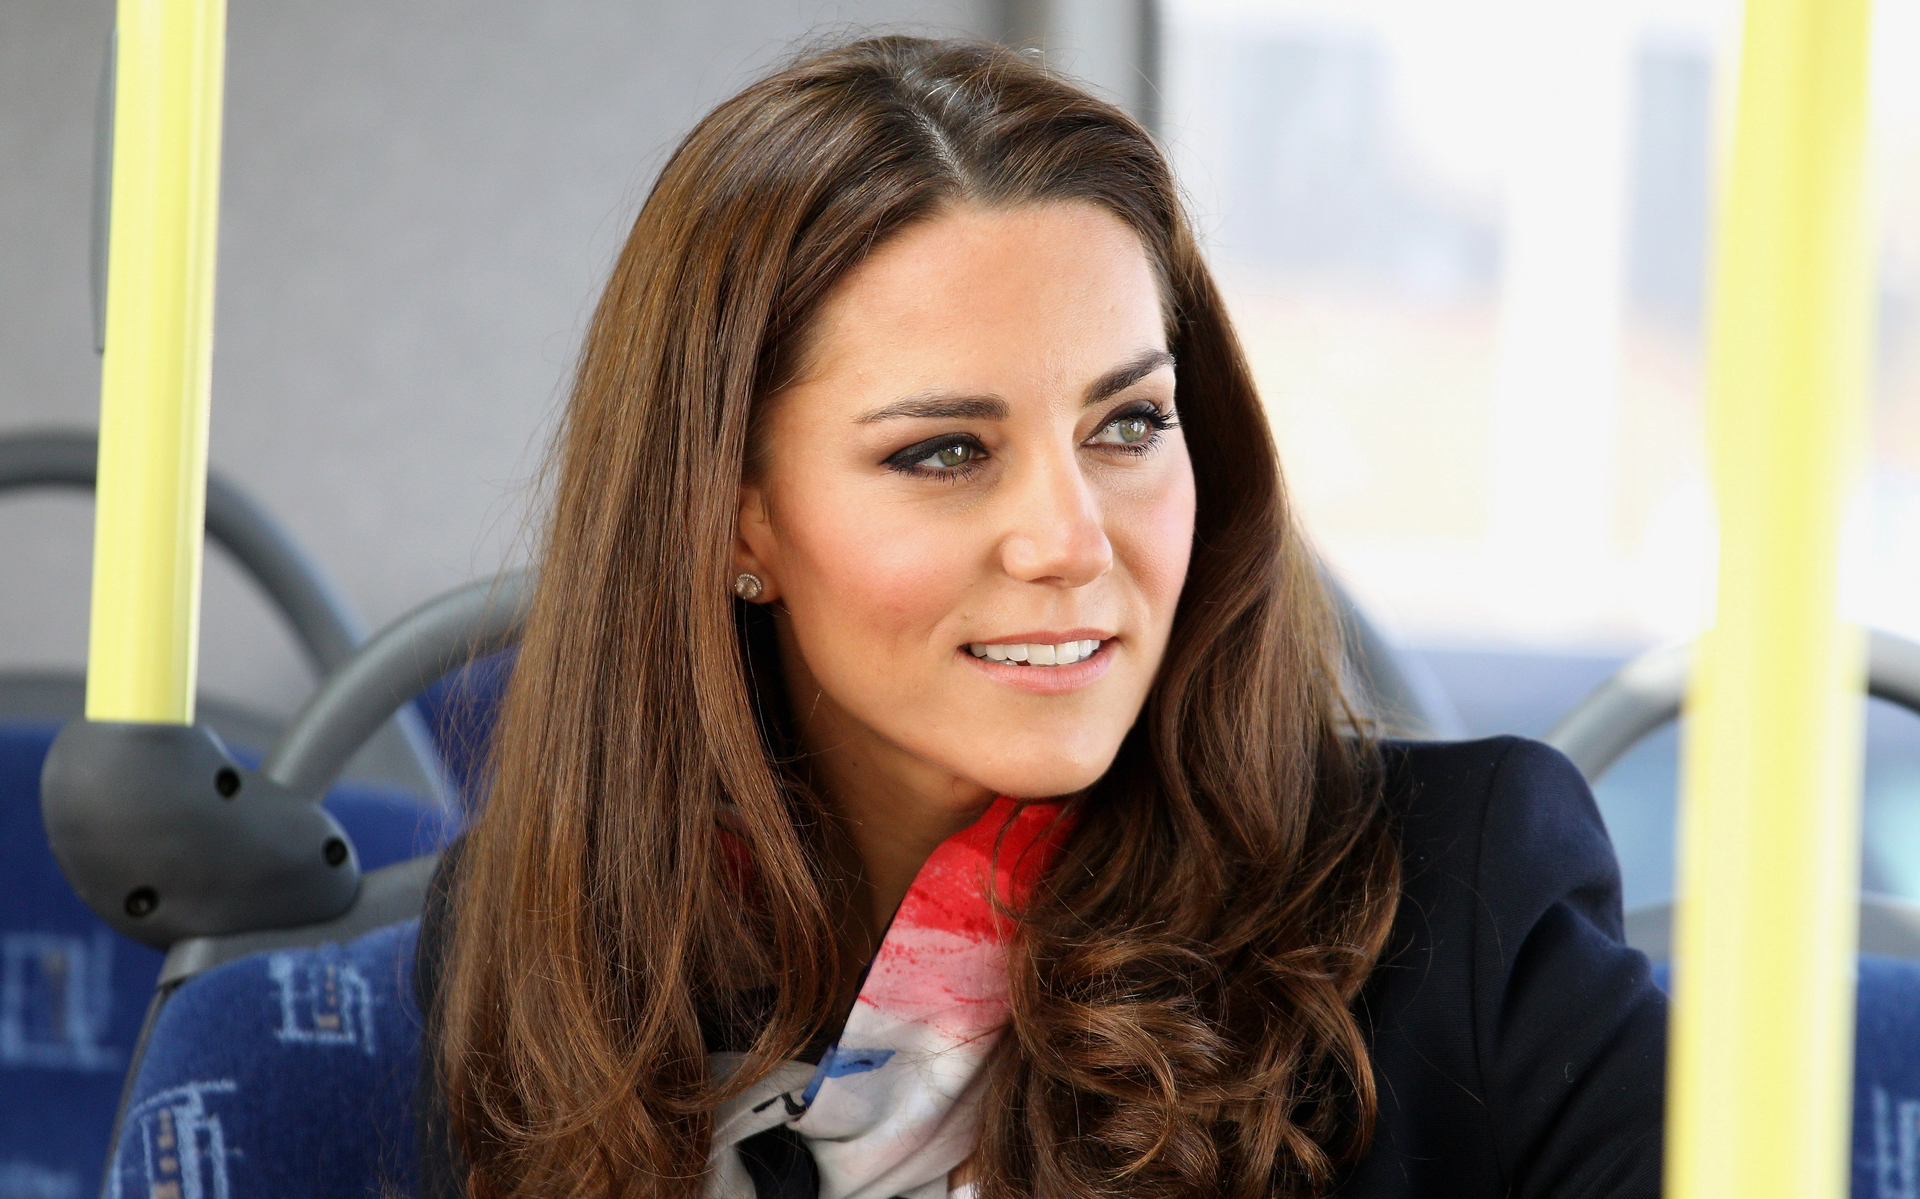 Kate Middleton Wallpaper | Cuadros